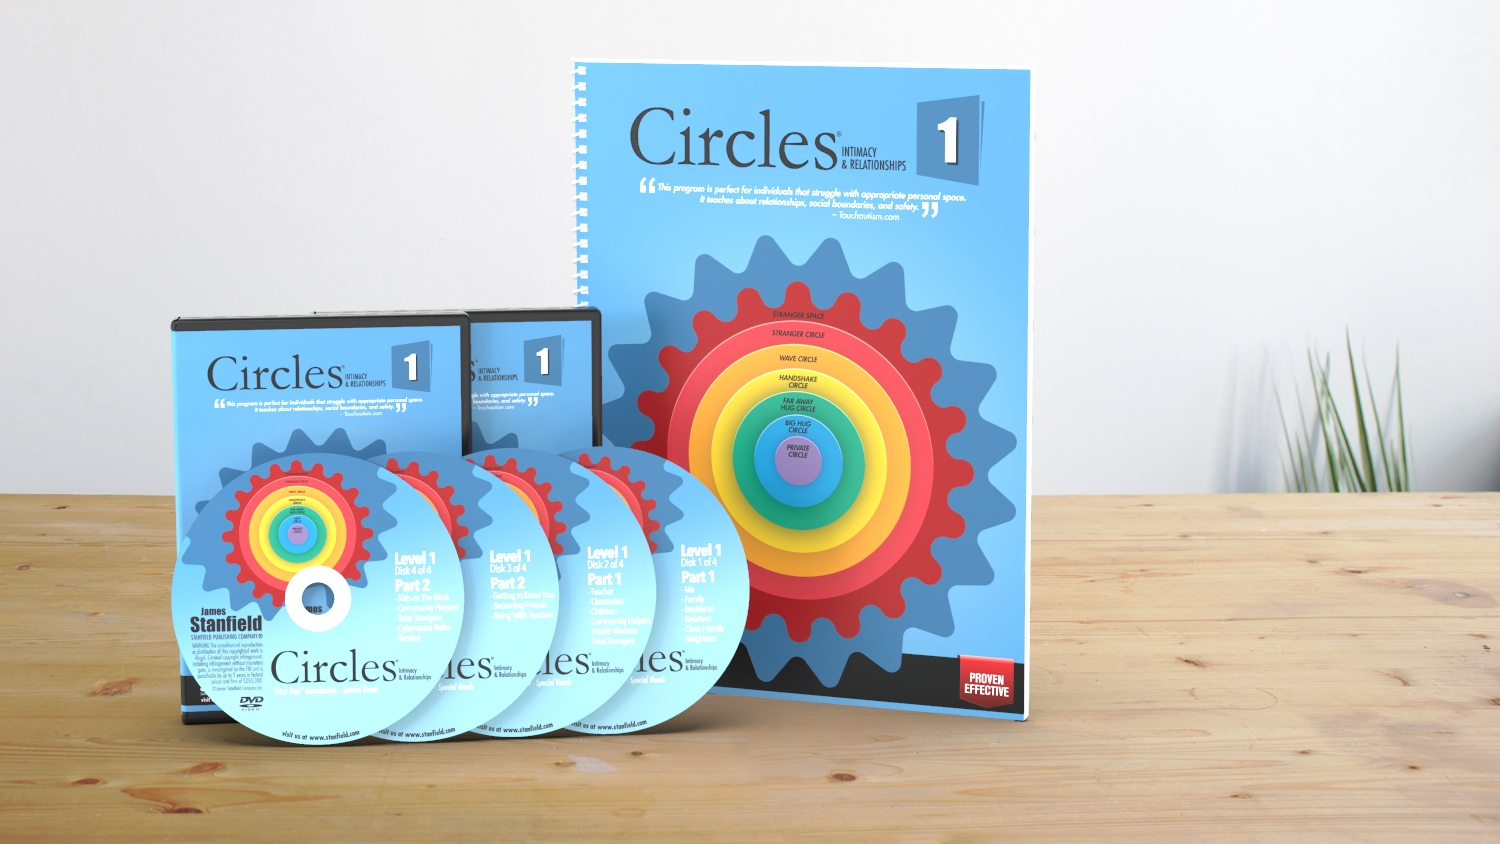 Circles Intimacy Amp Relationships